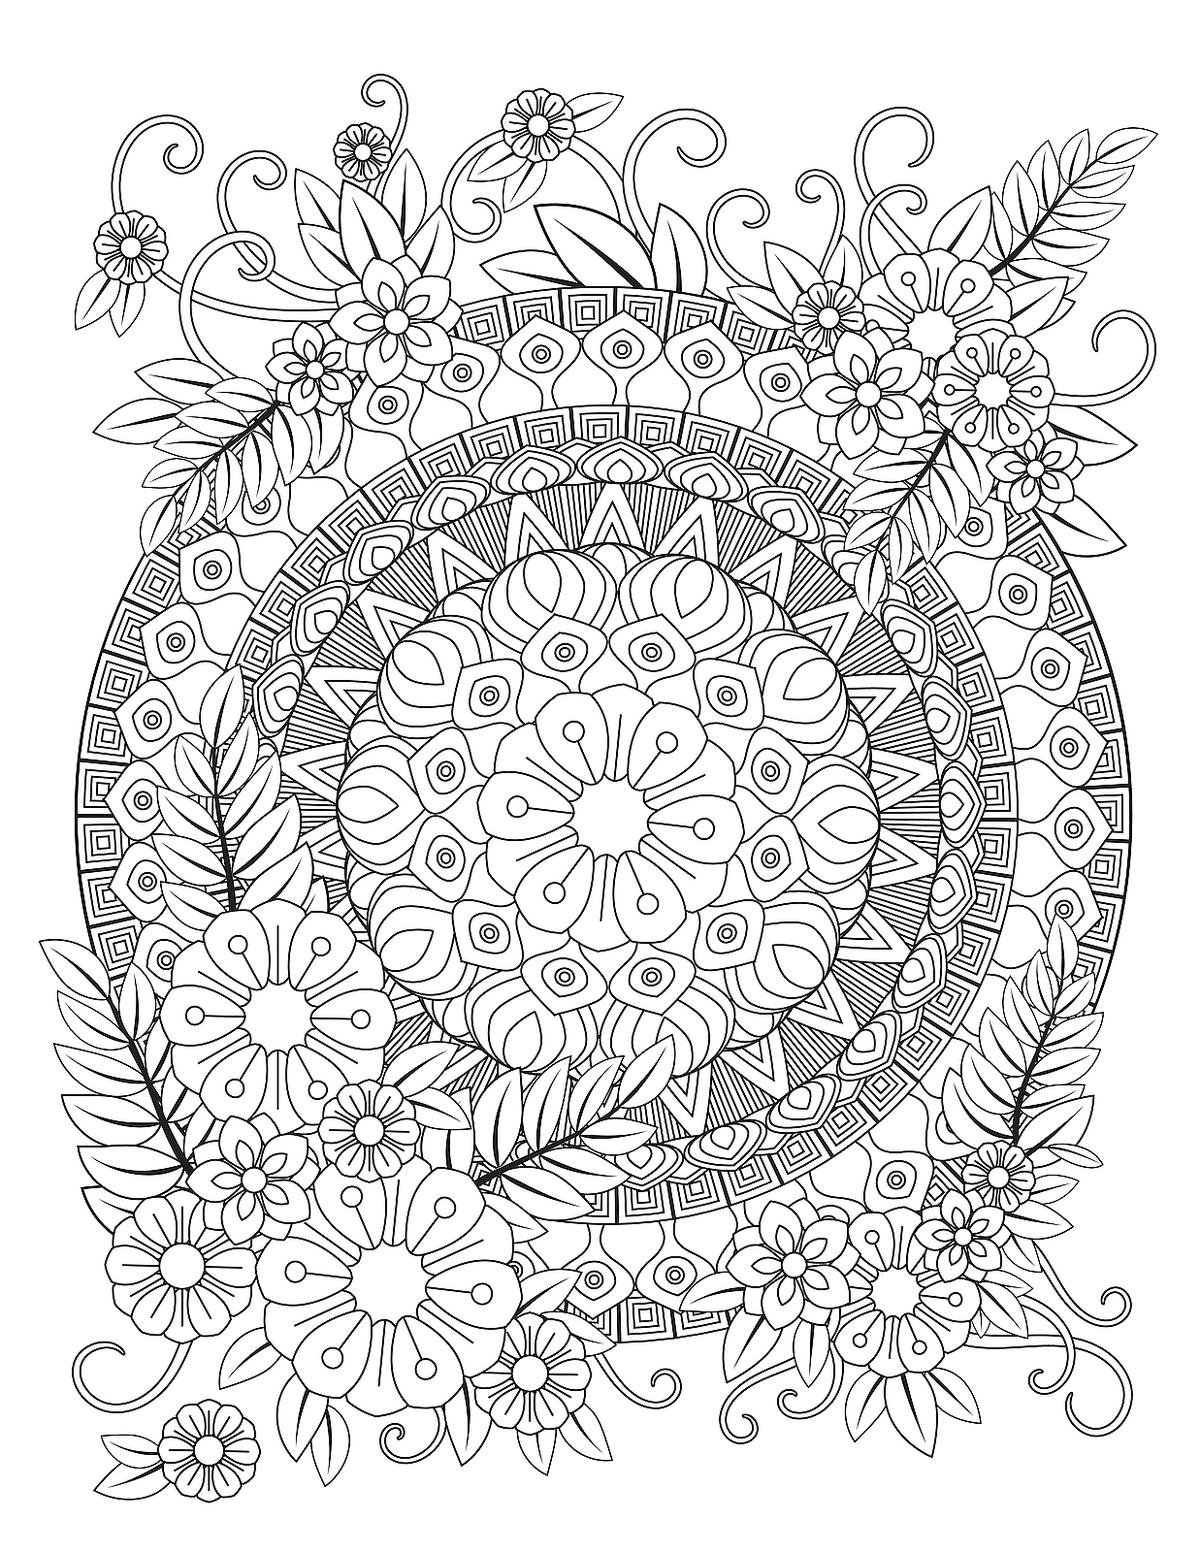 coloring books : Free Printable Mandala Coloring Pages For Adults ... | 1552x1200